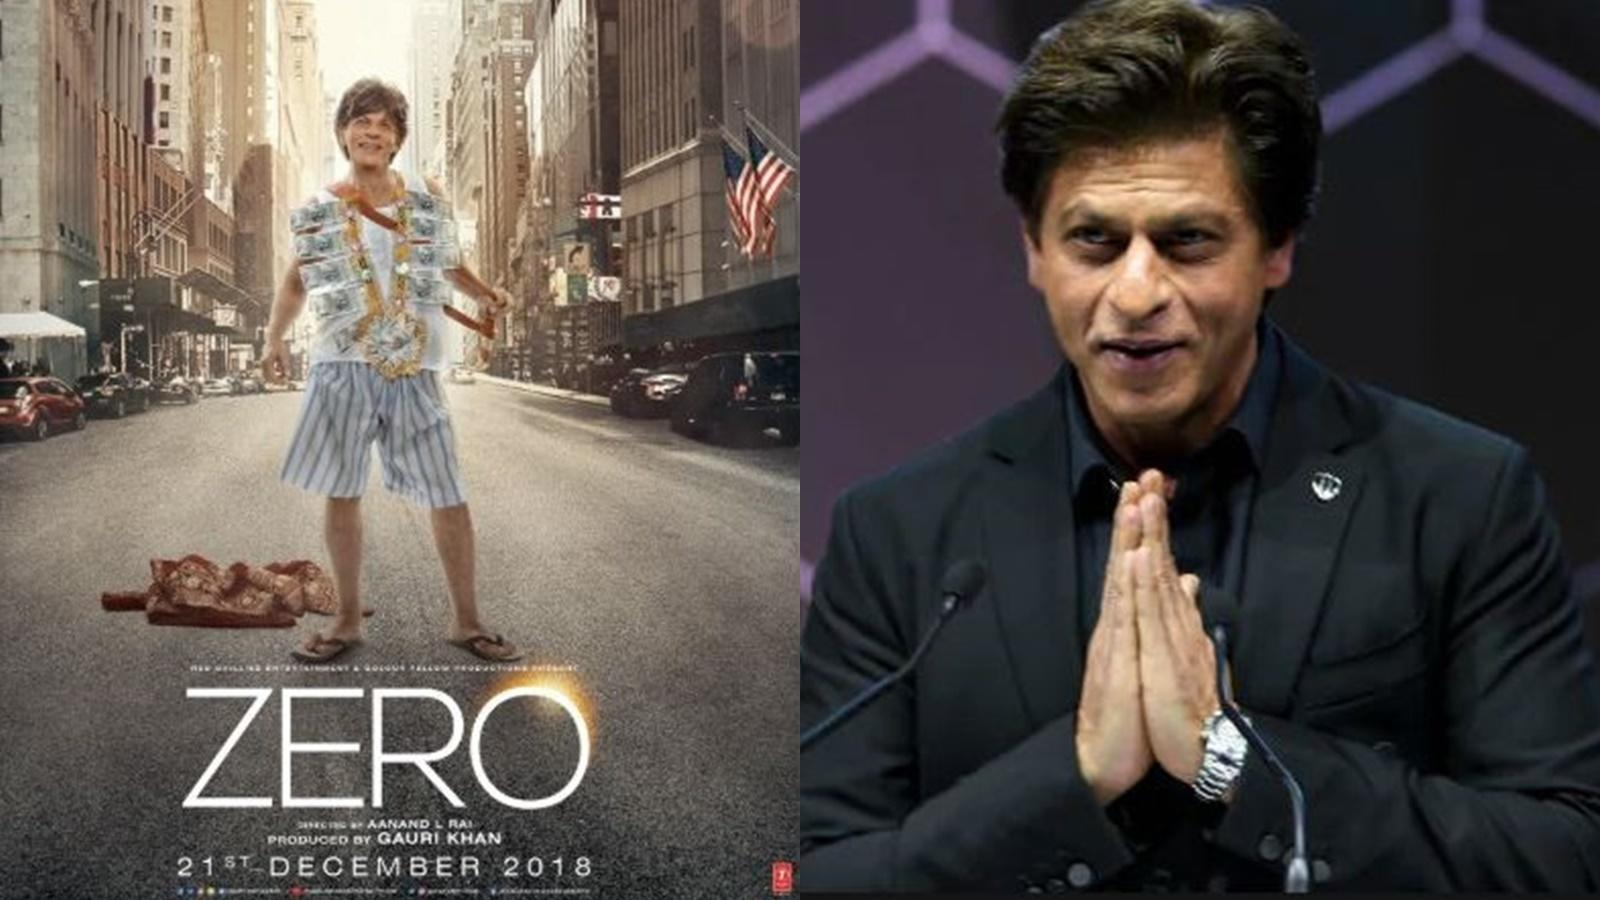 If 'Zero' fails, I will not get work for 6 months: Shah Rukh Khan